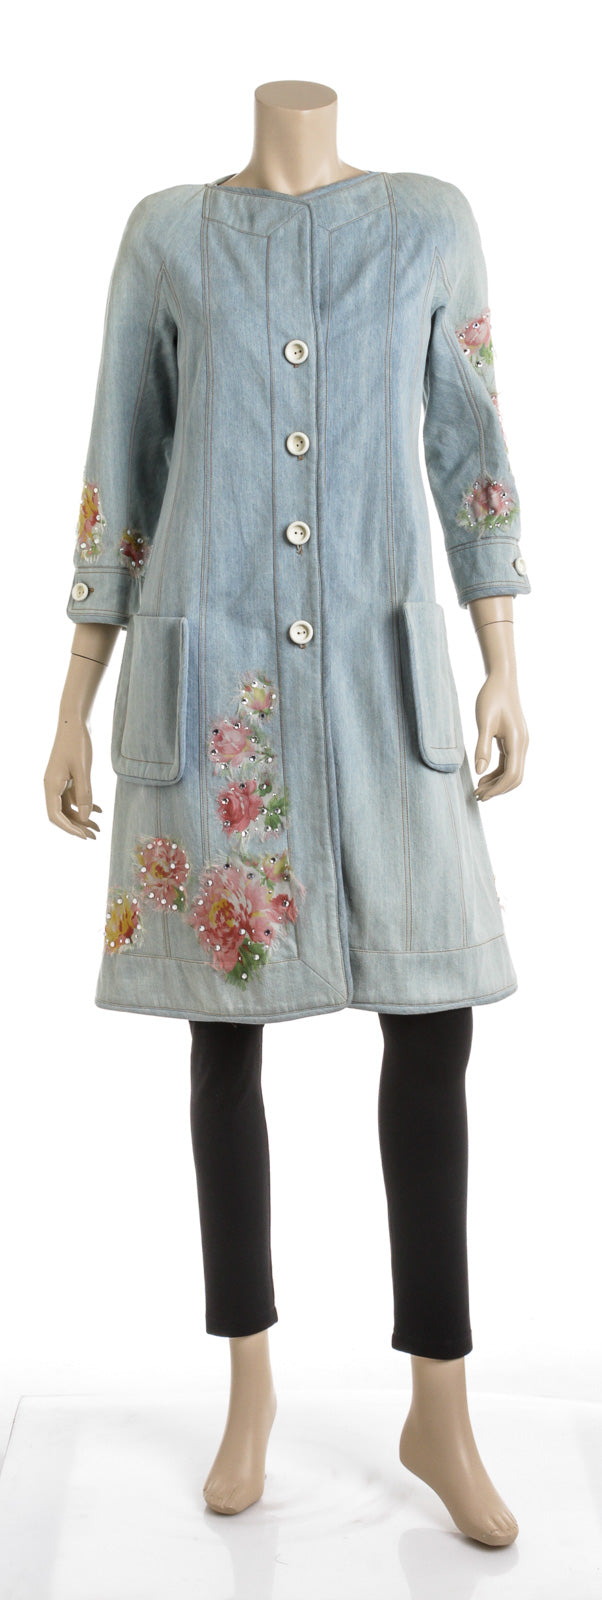 Christian Dior Washed Denim Floral Embellished Coat (Size 4)